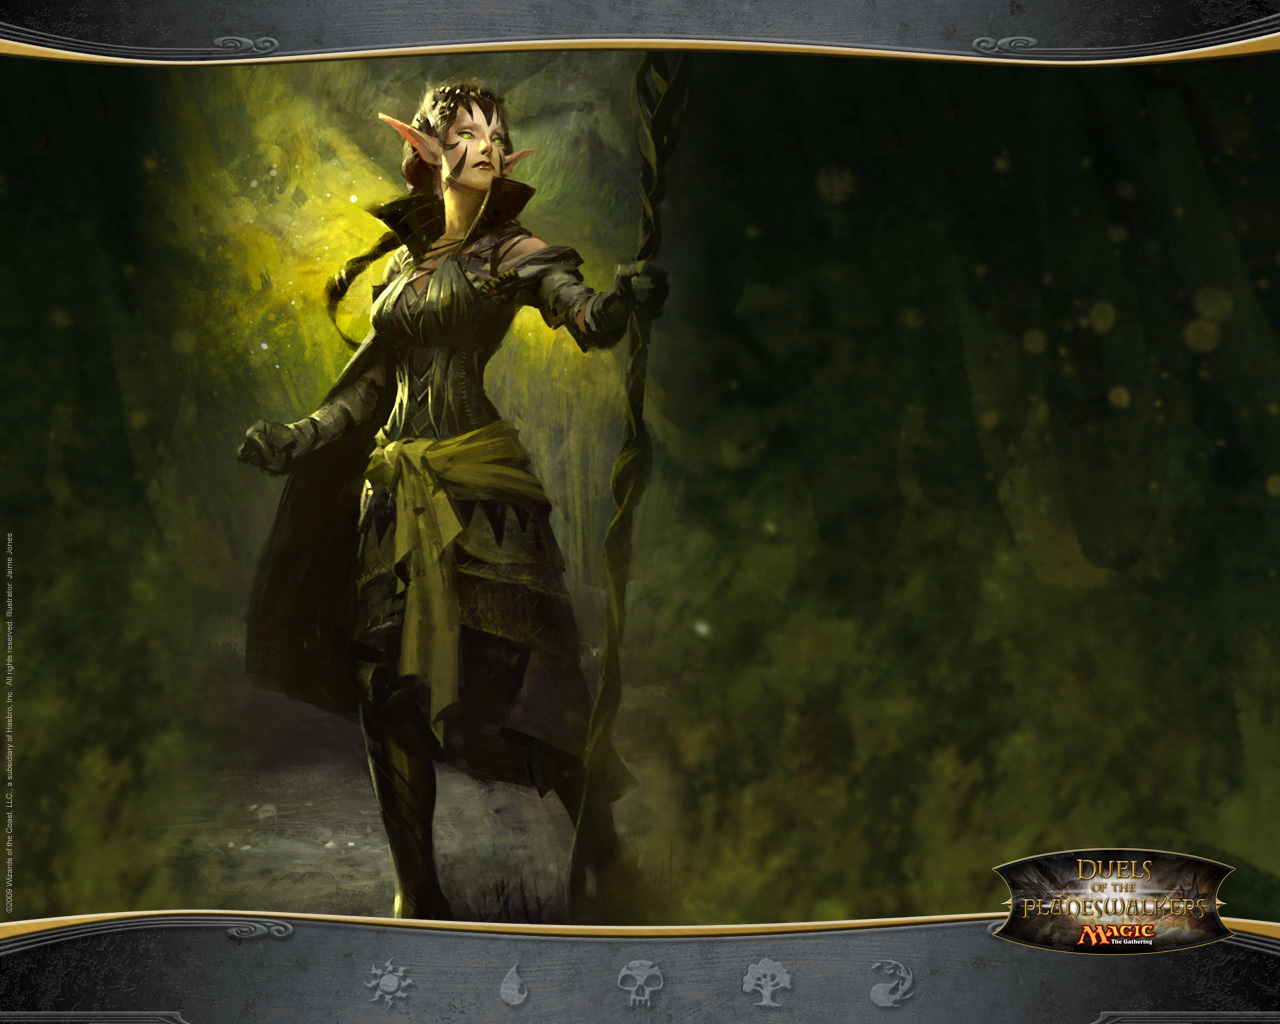 magic: the gathering magic HD Wallpaper